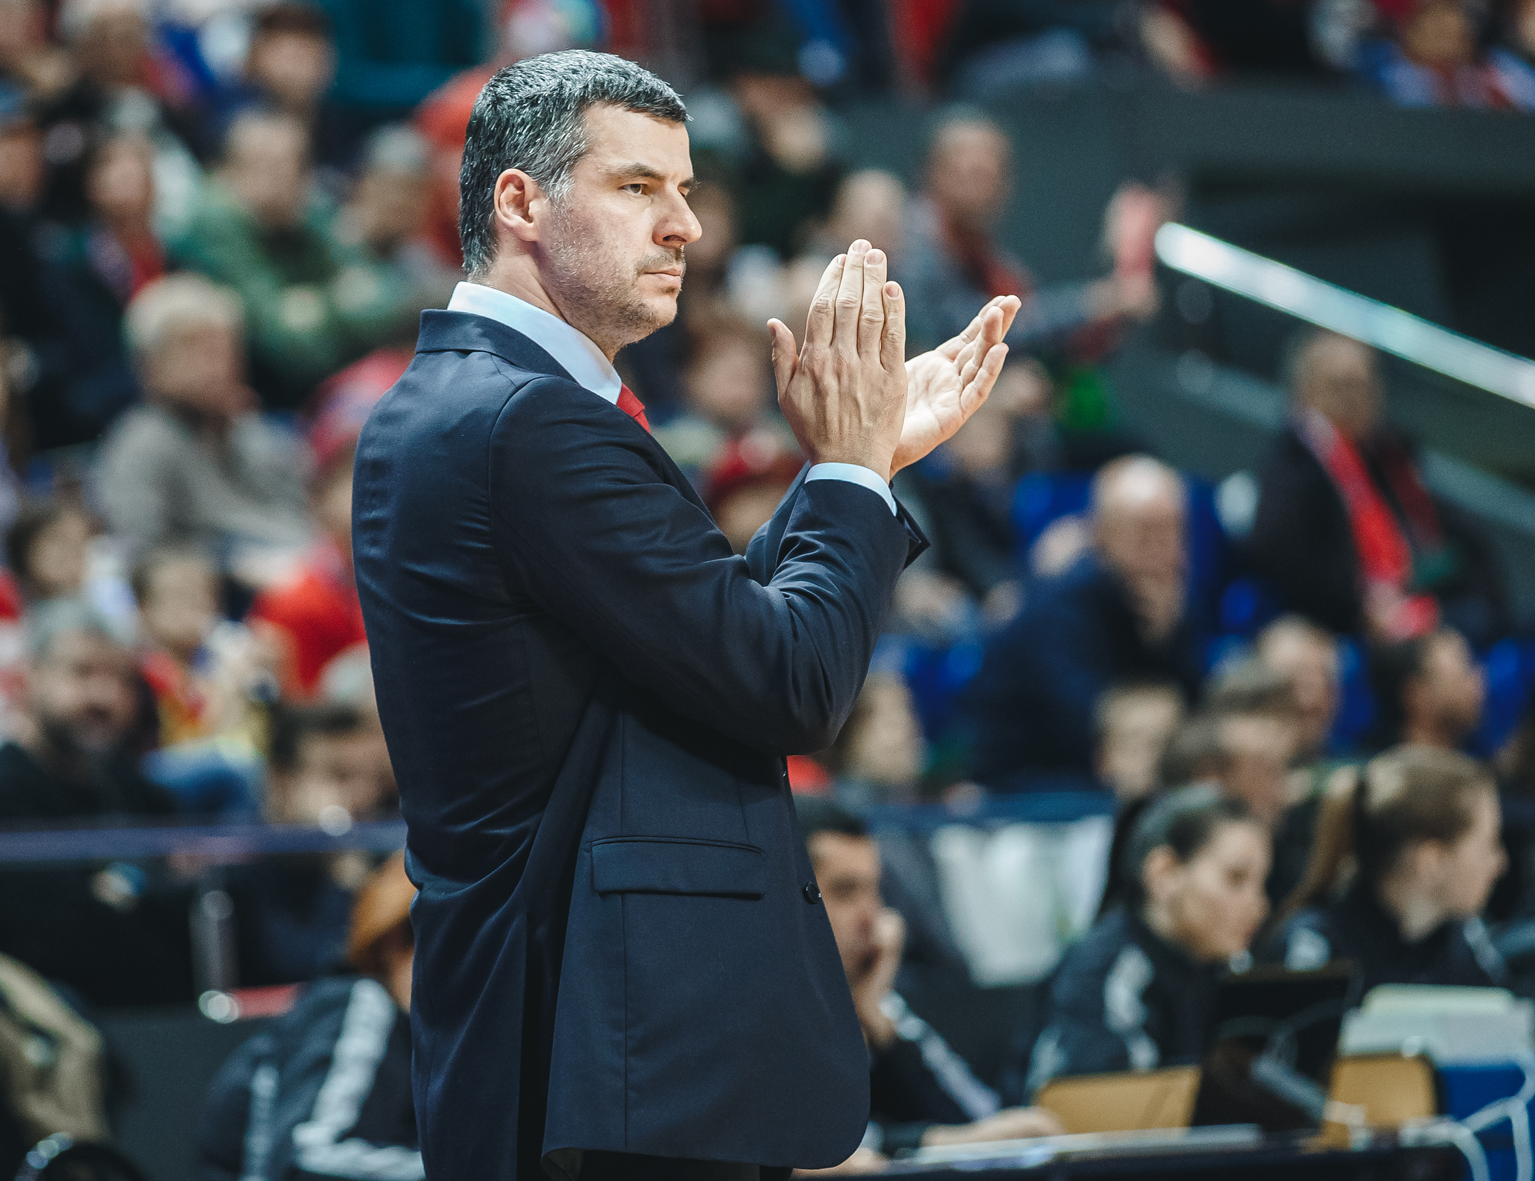 Vlada Jovanovic Named Loko Head Coach Through End Of Season